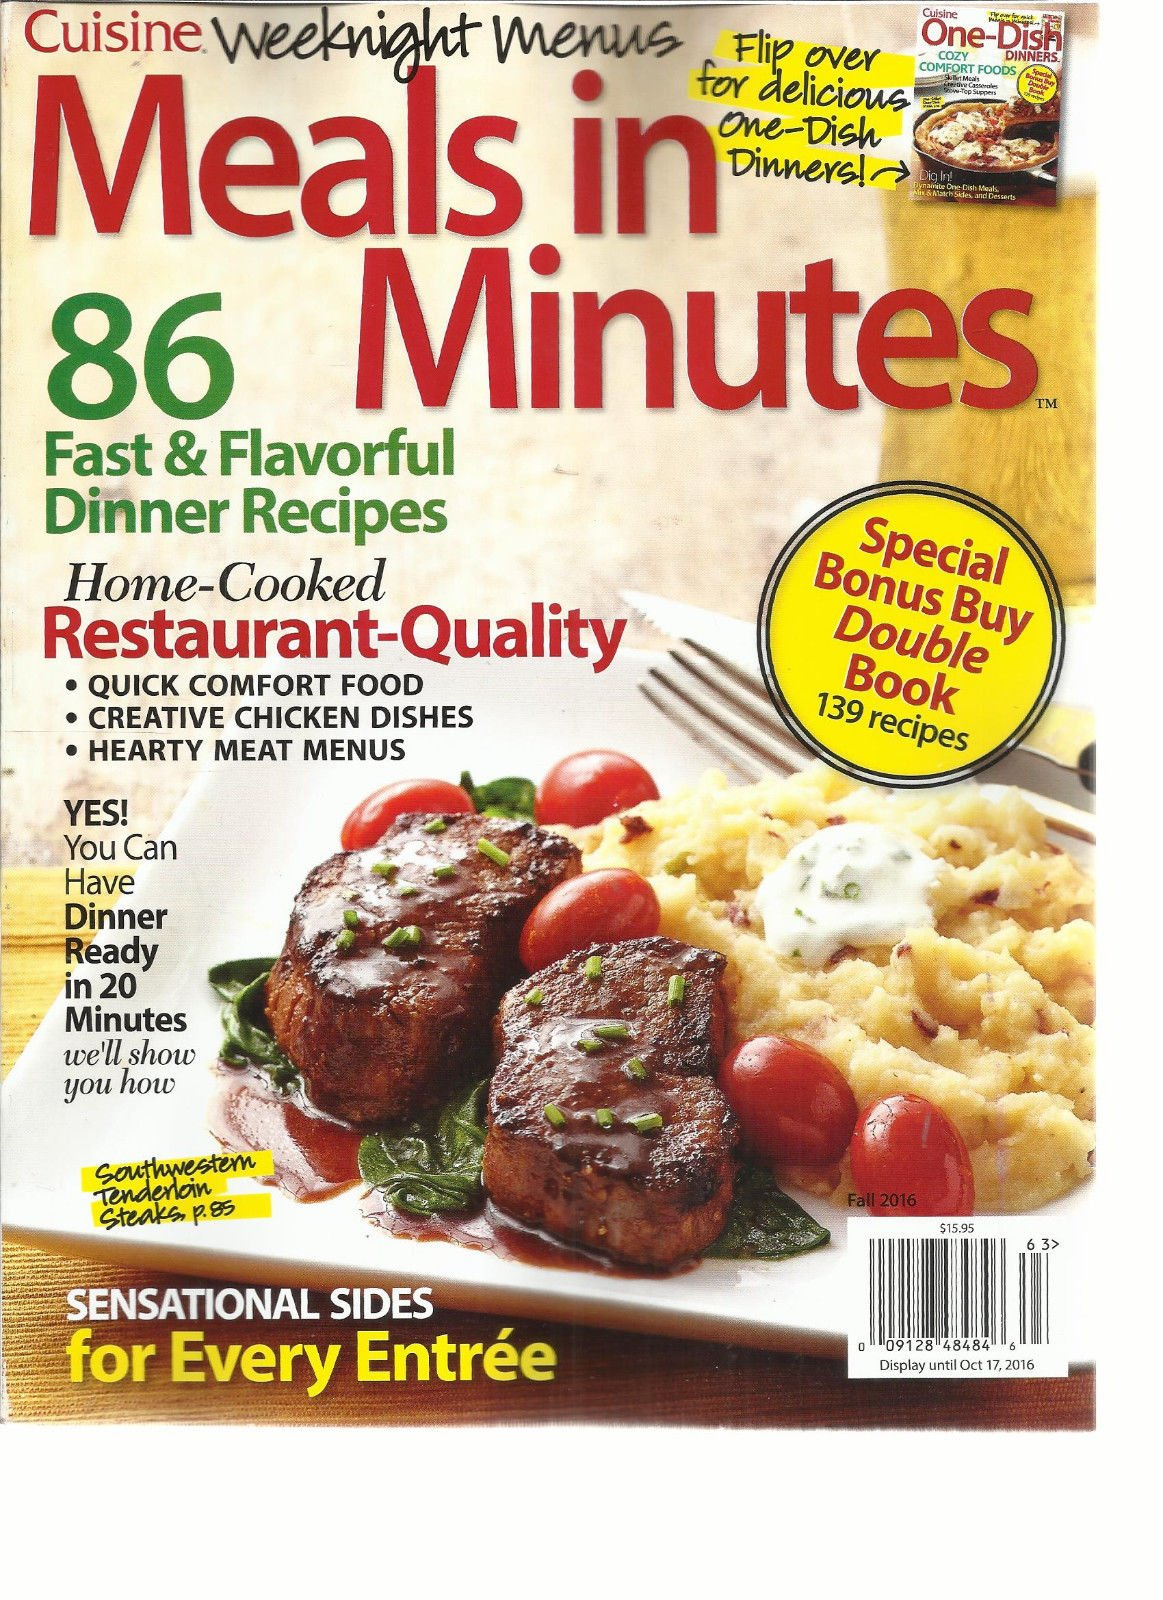 CUISINE WEEKNIGHT MENUS MEALS IN MINUTES/ONE DISH DINNERS ISSUE, 2016